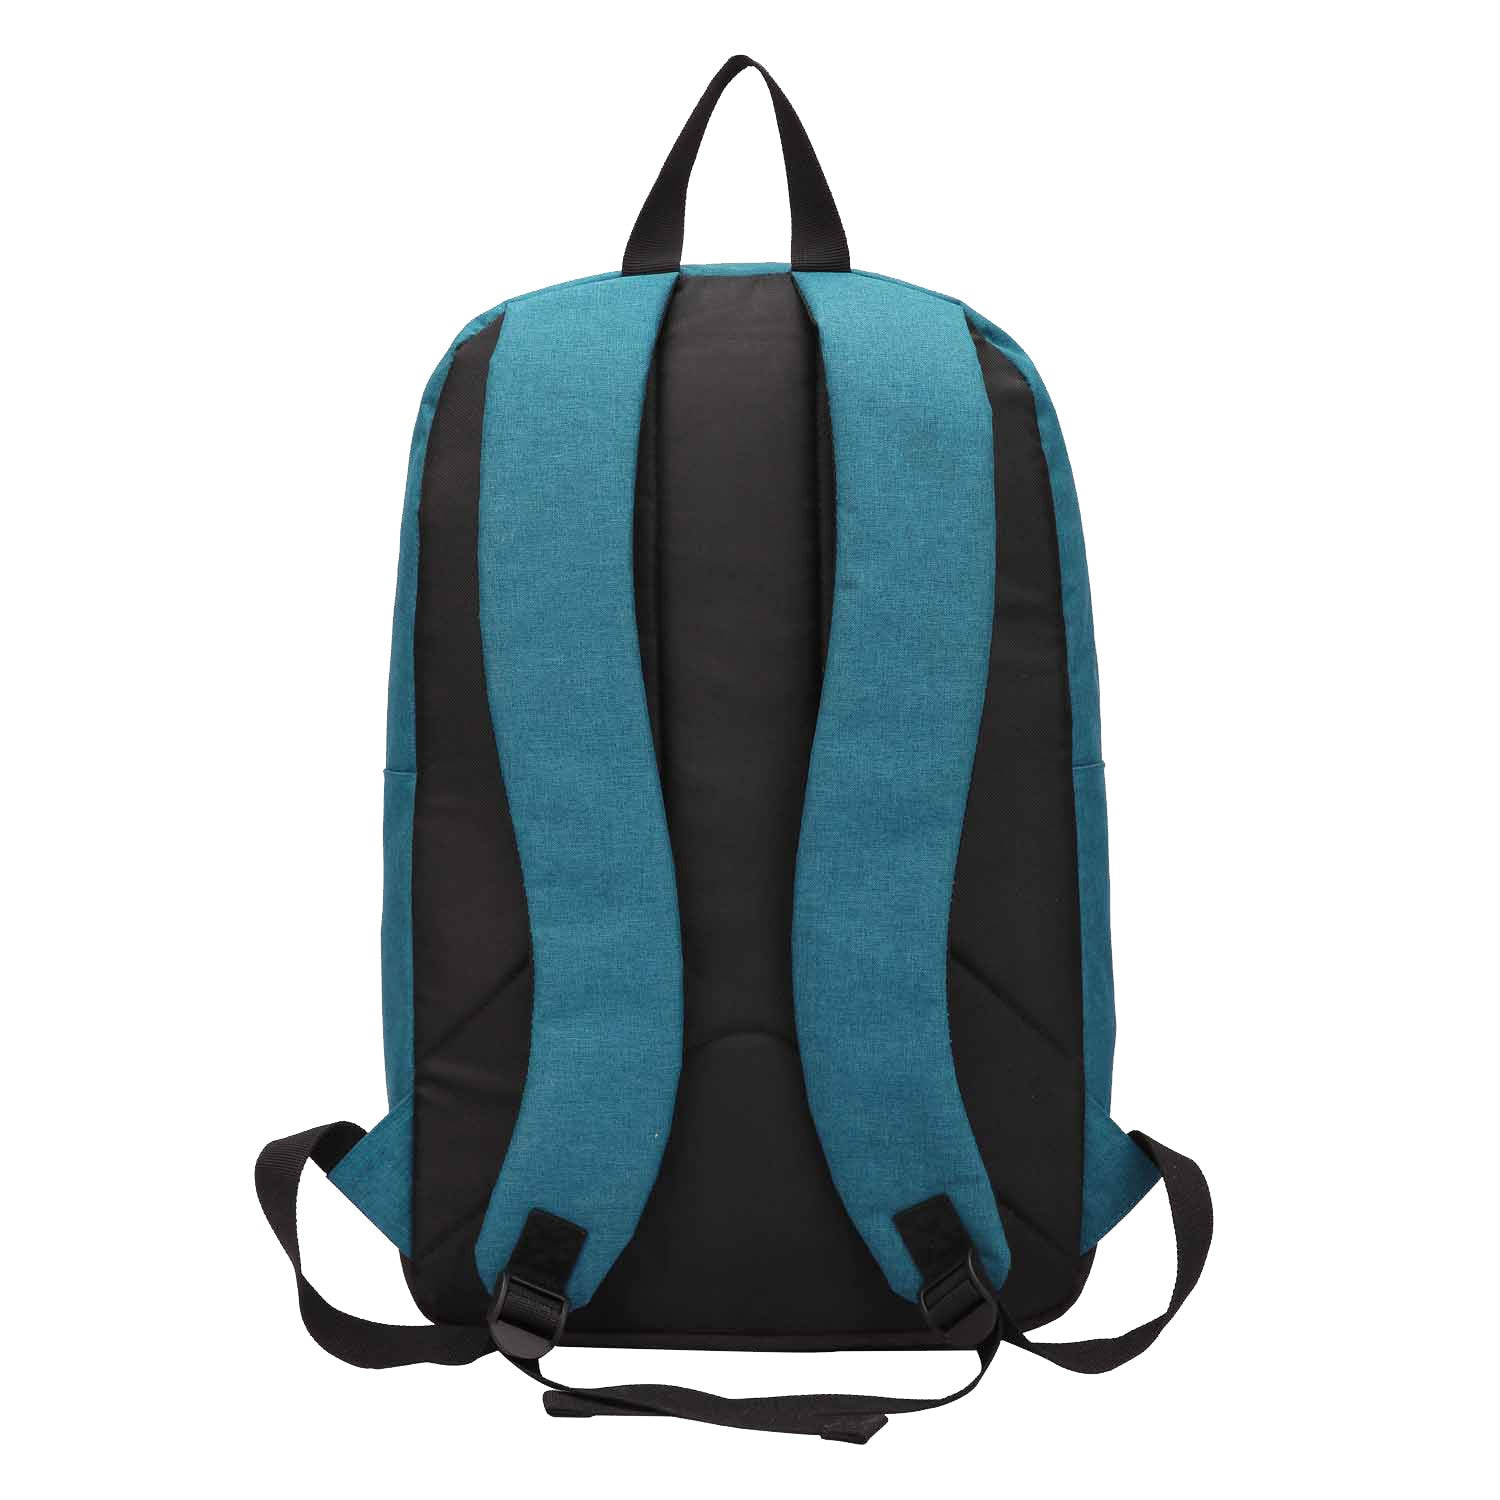 Classic Backpack DayPack Backpacks for School Rucksacks RL813NJb